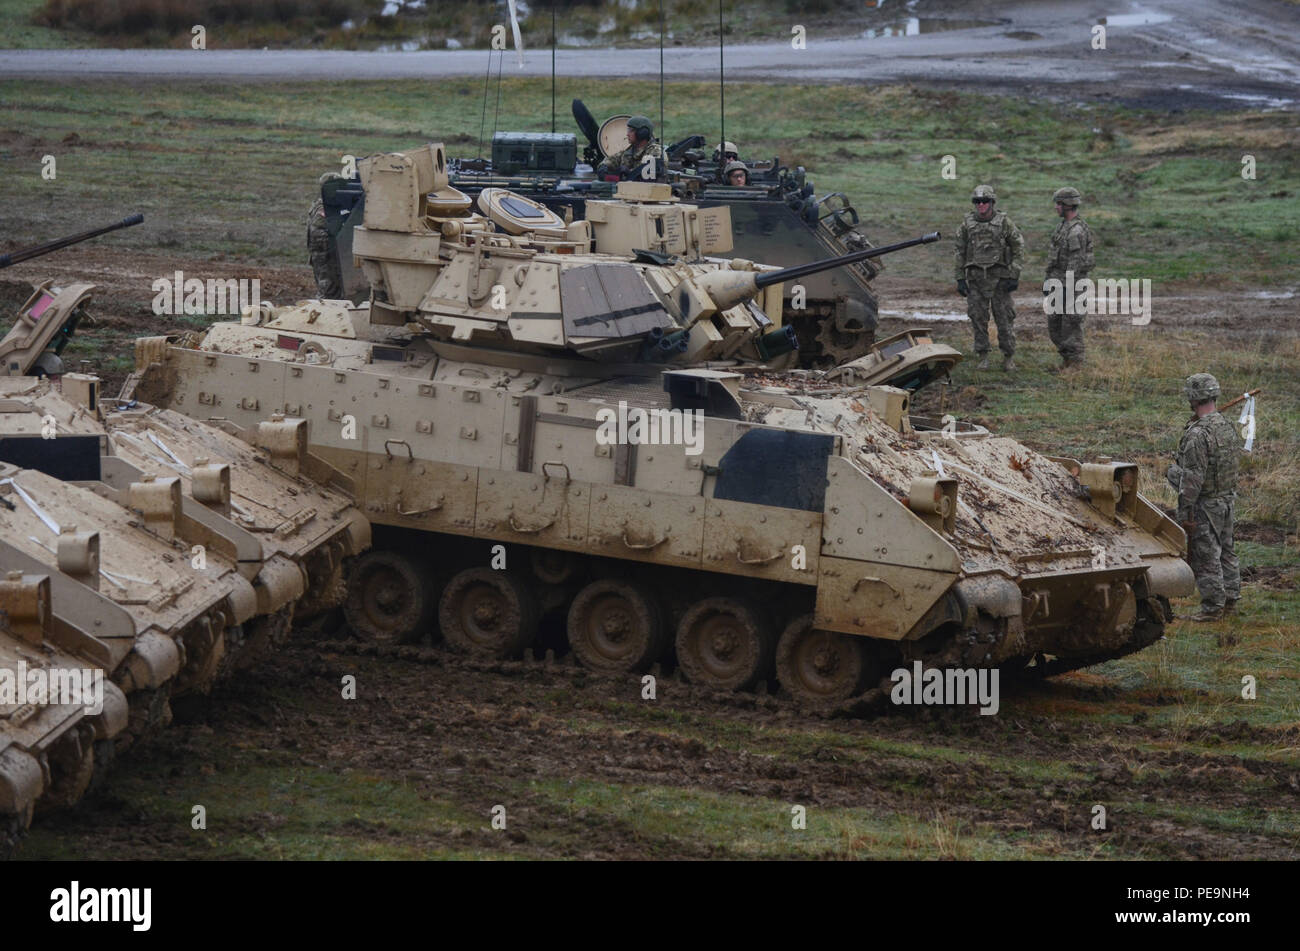 U.S. Army Soldiers of 5th Squadron, 7th Cavalry Regiment, 3rd Infantry Division, stationed at Fort Stewart, Ga., line the Bradley Fighting Vehicles into a formation for the closing ceremony of Exercise Peace Sentinel at Novo Selo Training Center, Bulgaria, Nov. 24, 2015. (U.S. Army photo by Staff Sgt. Steven M. Colvin/Released) - Stock Image